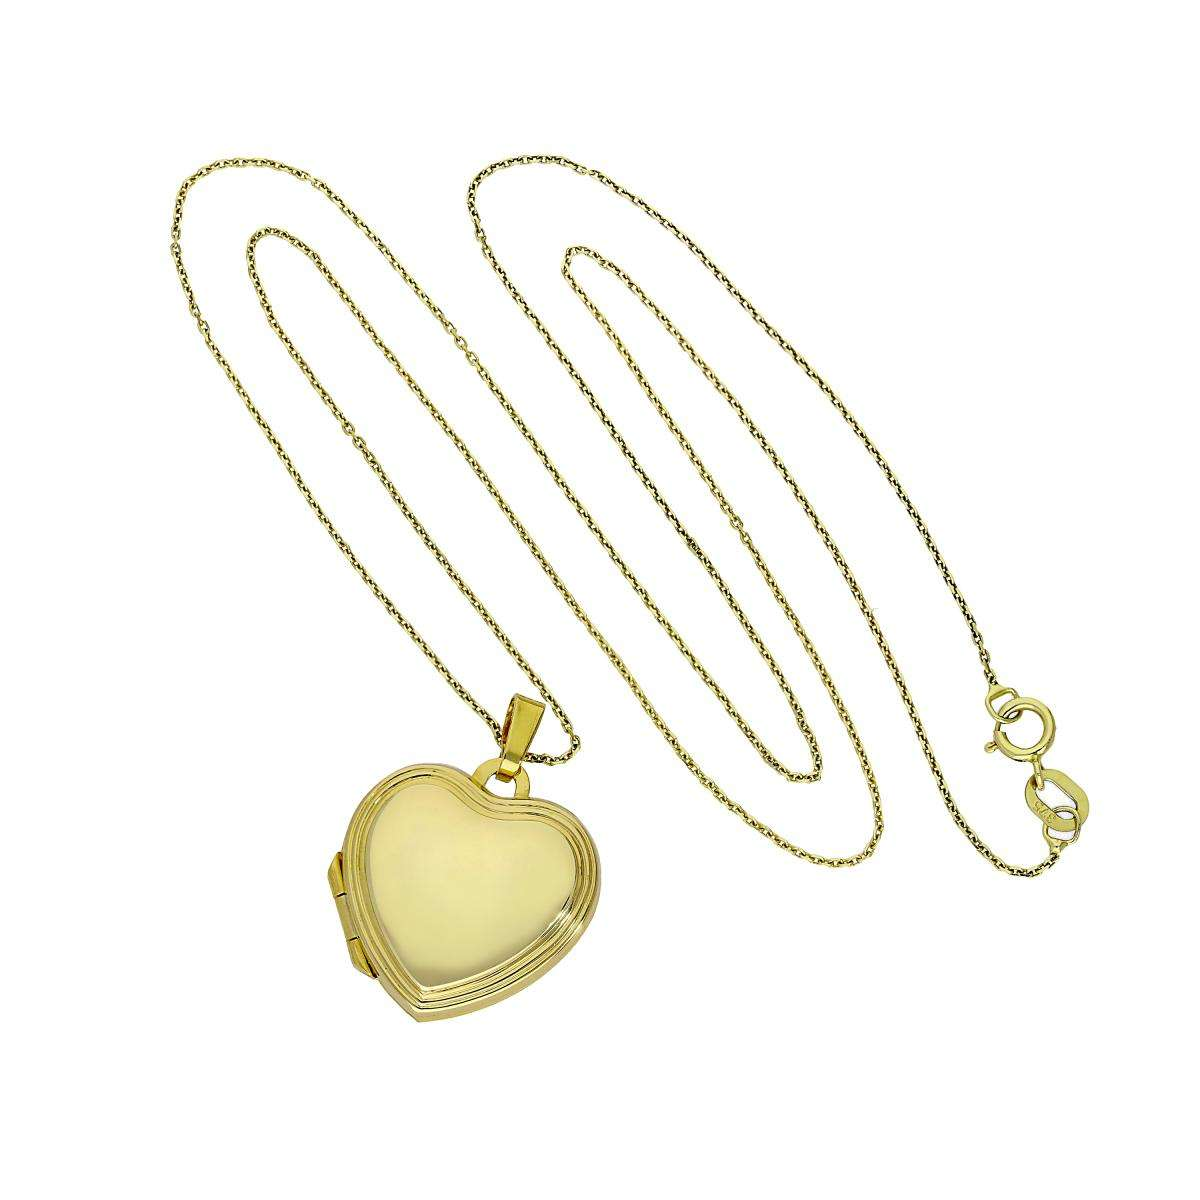 Alterative image for 9ct Gold Engravable Heart Locket with Raised Border on Chain 16 - 20 Inches